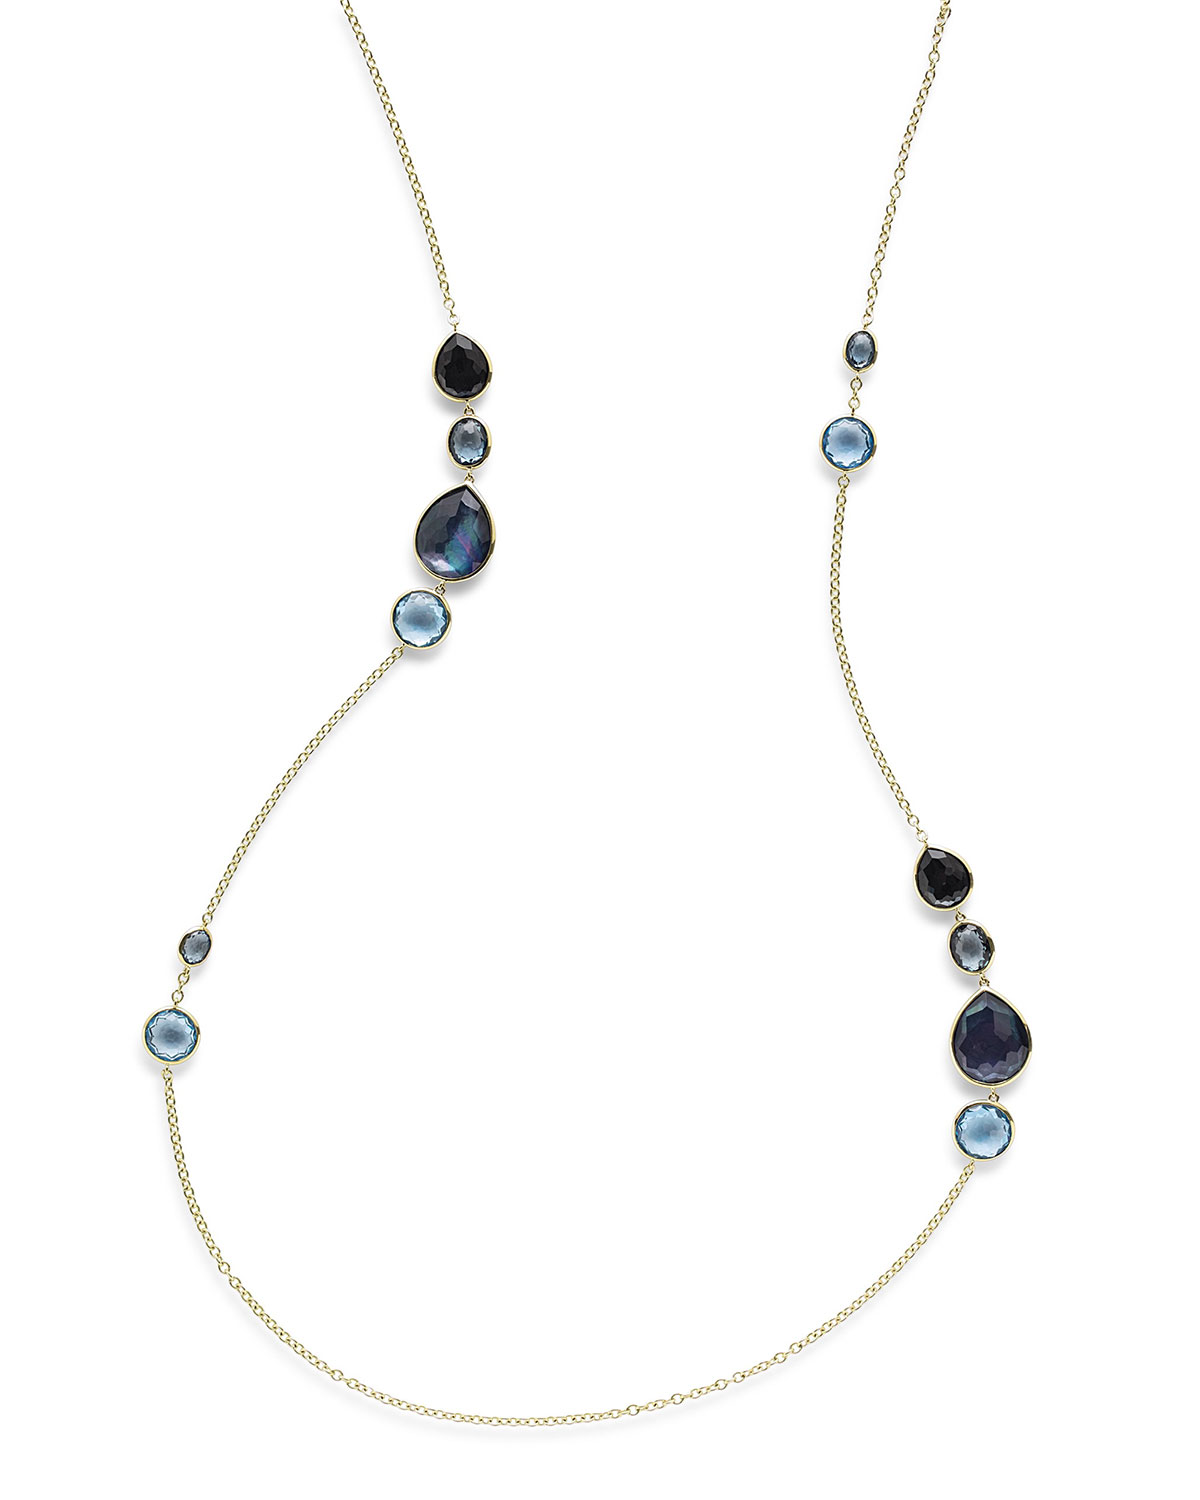 Ippolita 18K Rock Candy Gelato Grouped Station Necklace, 37